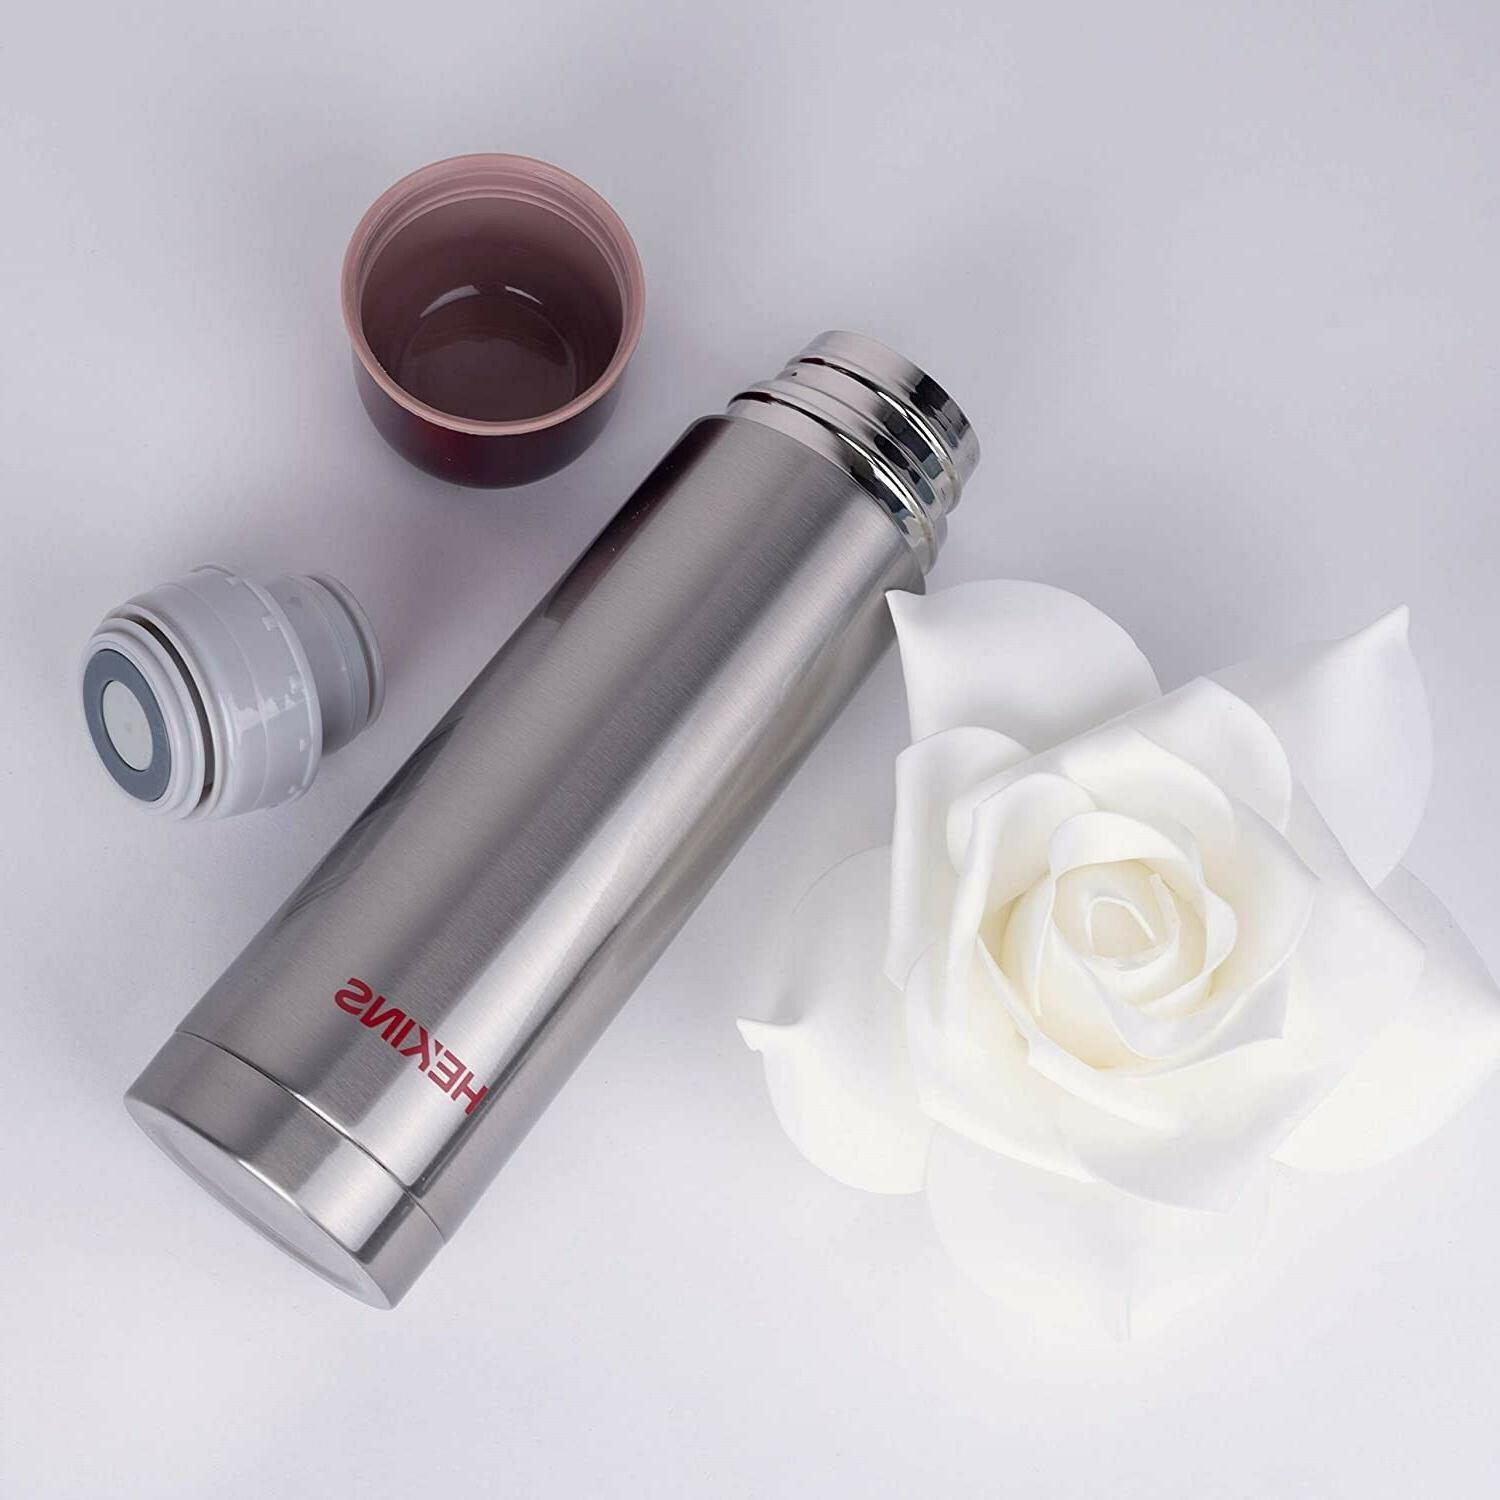 16 9 ounce vacuum insulated stainless steel